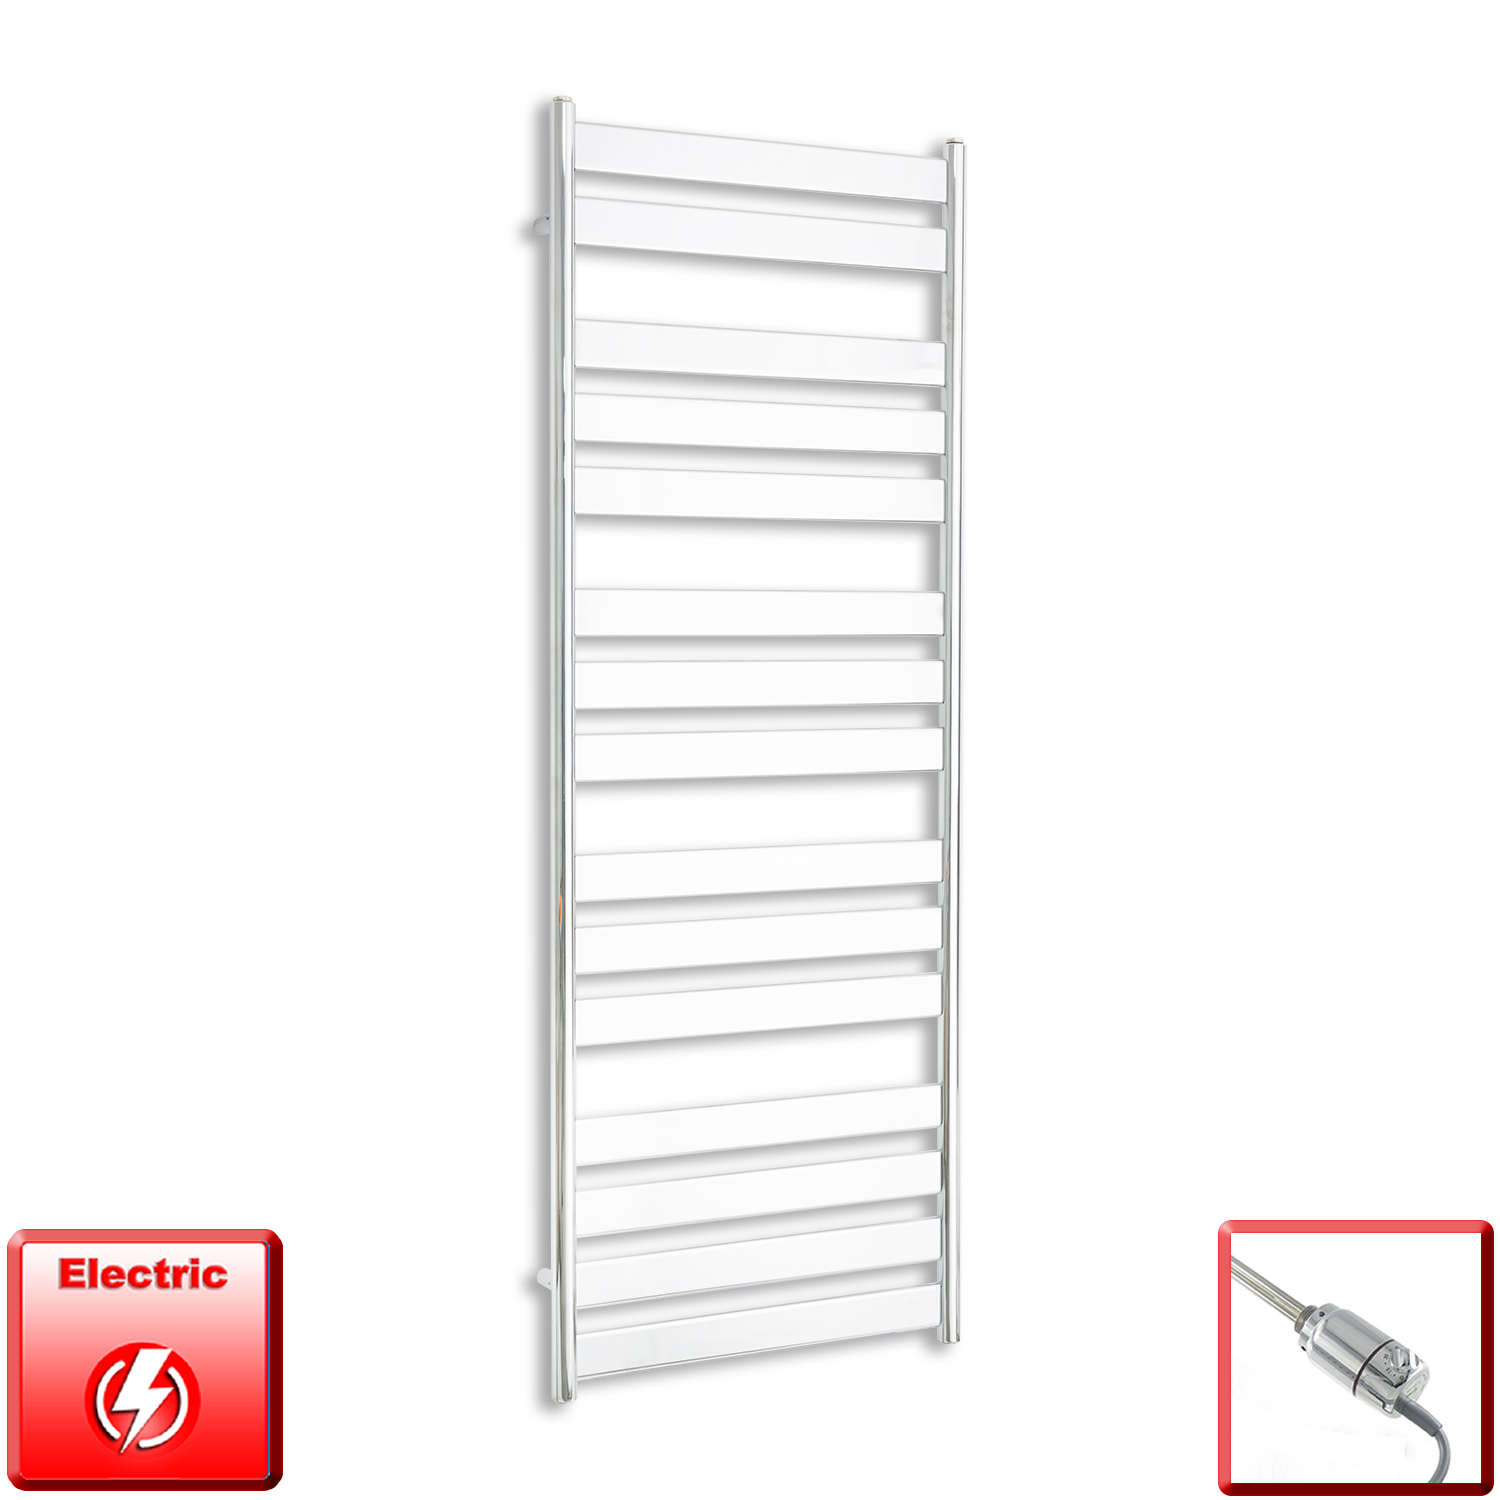 600mm Wide 1600mm High Pre-Filled Chrome Electric Towel Rail Radiator With Thermostatic GT Element